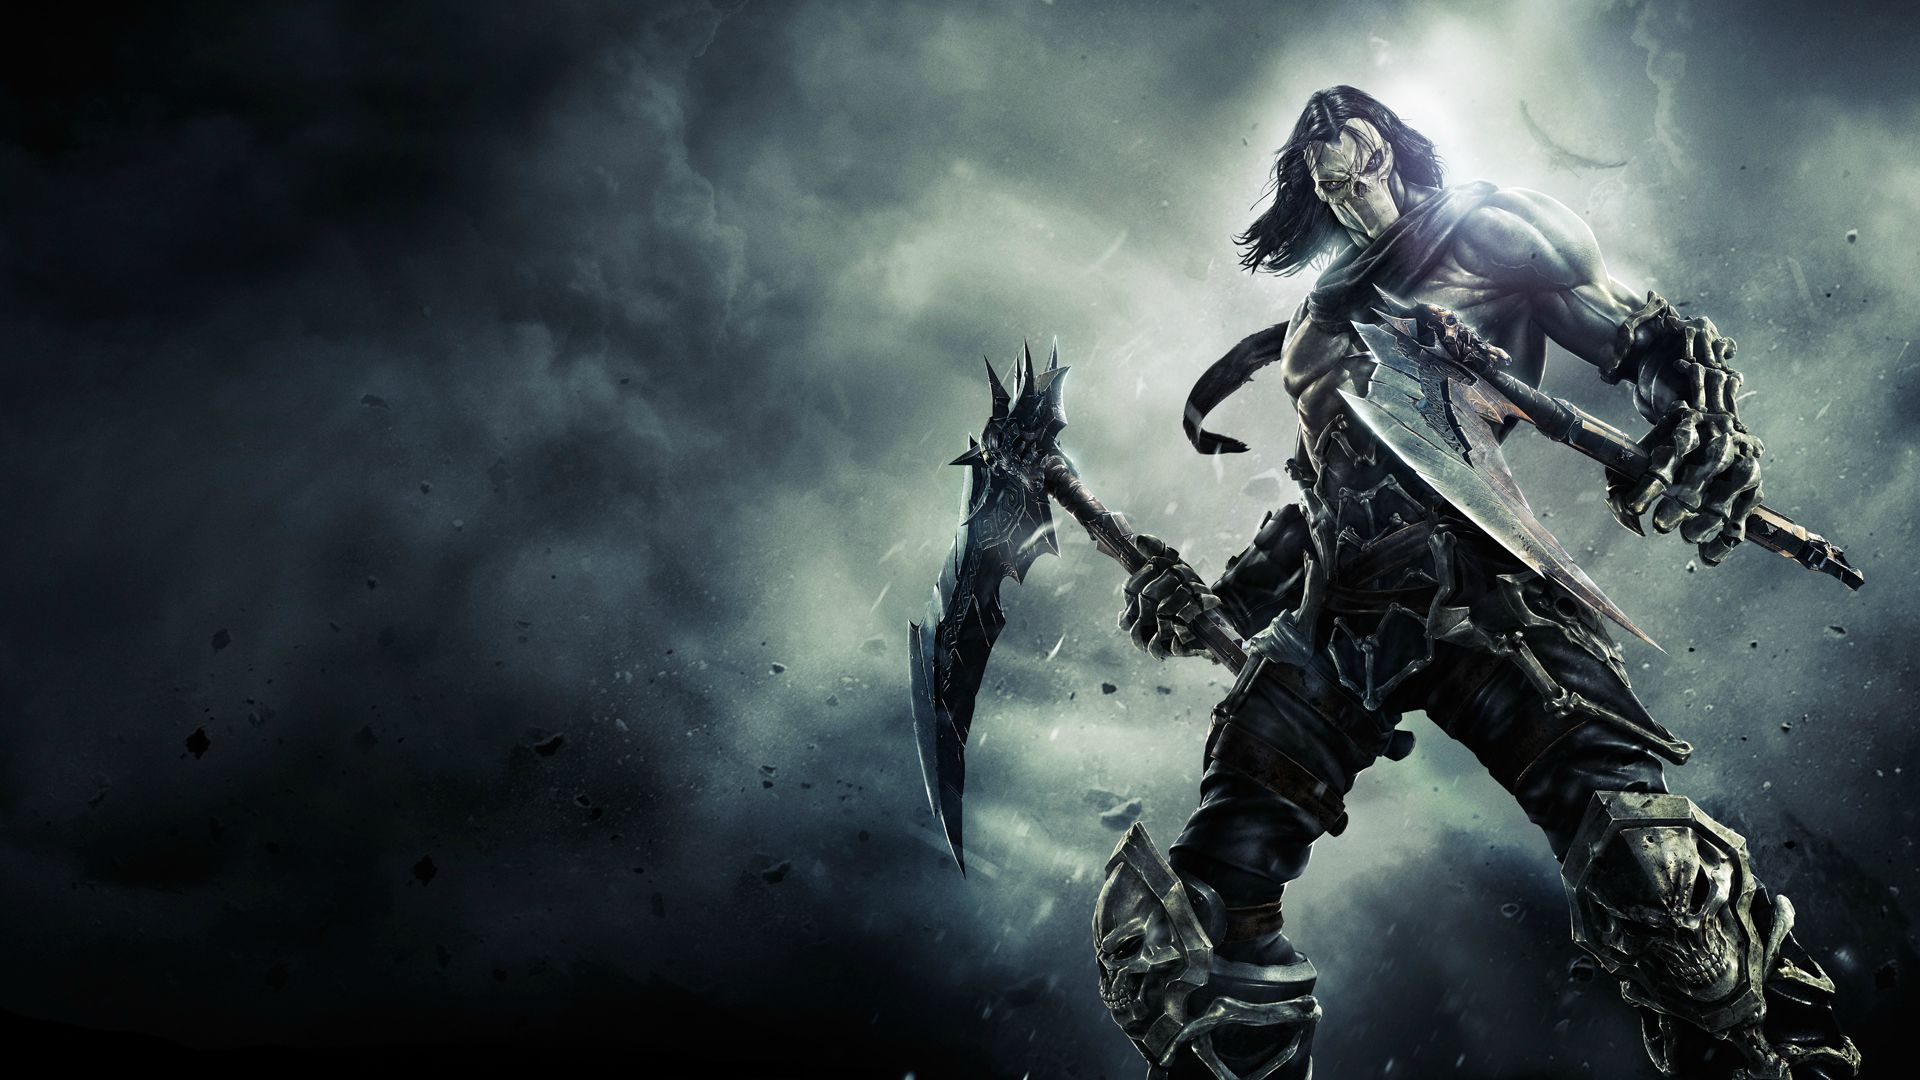 Cool Fantasy Wallpaper with Dark Knight Image HD Wallpapers for 1920x1080